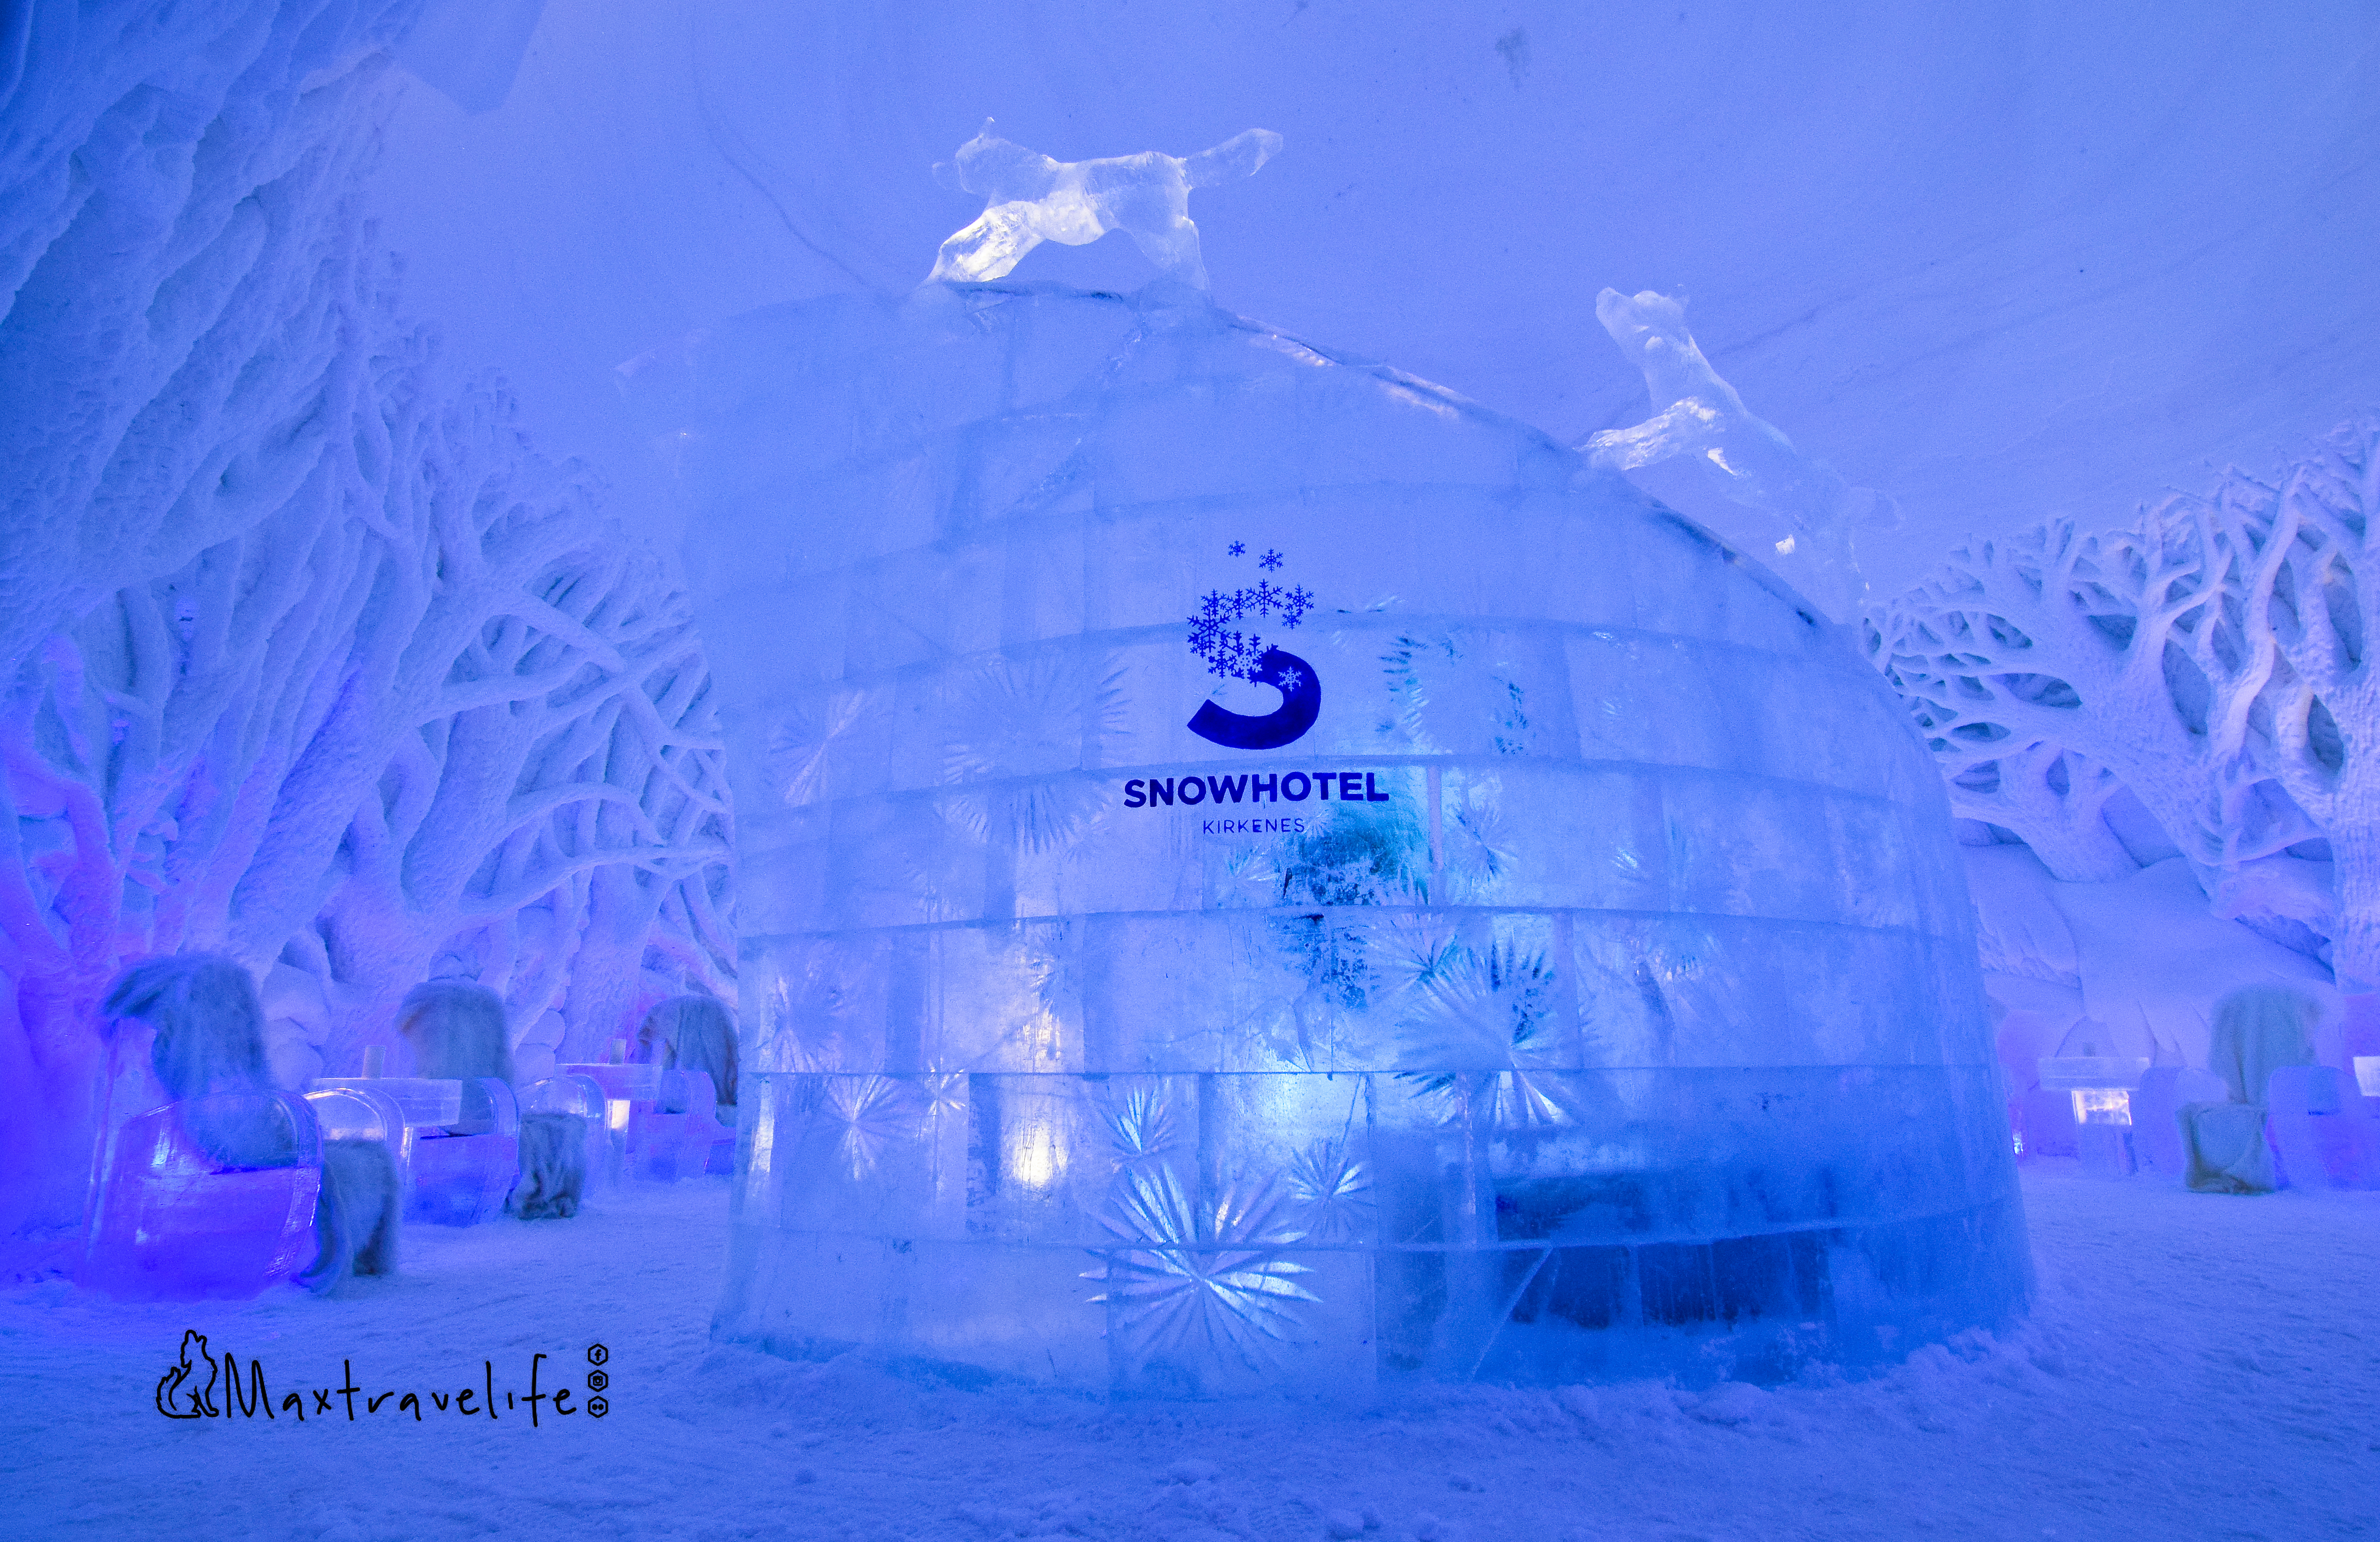 snowhotel entrance (2)